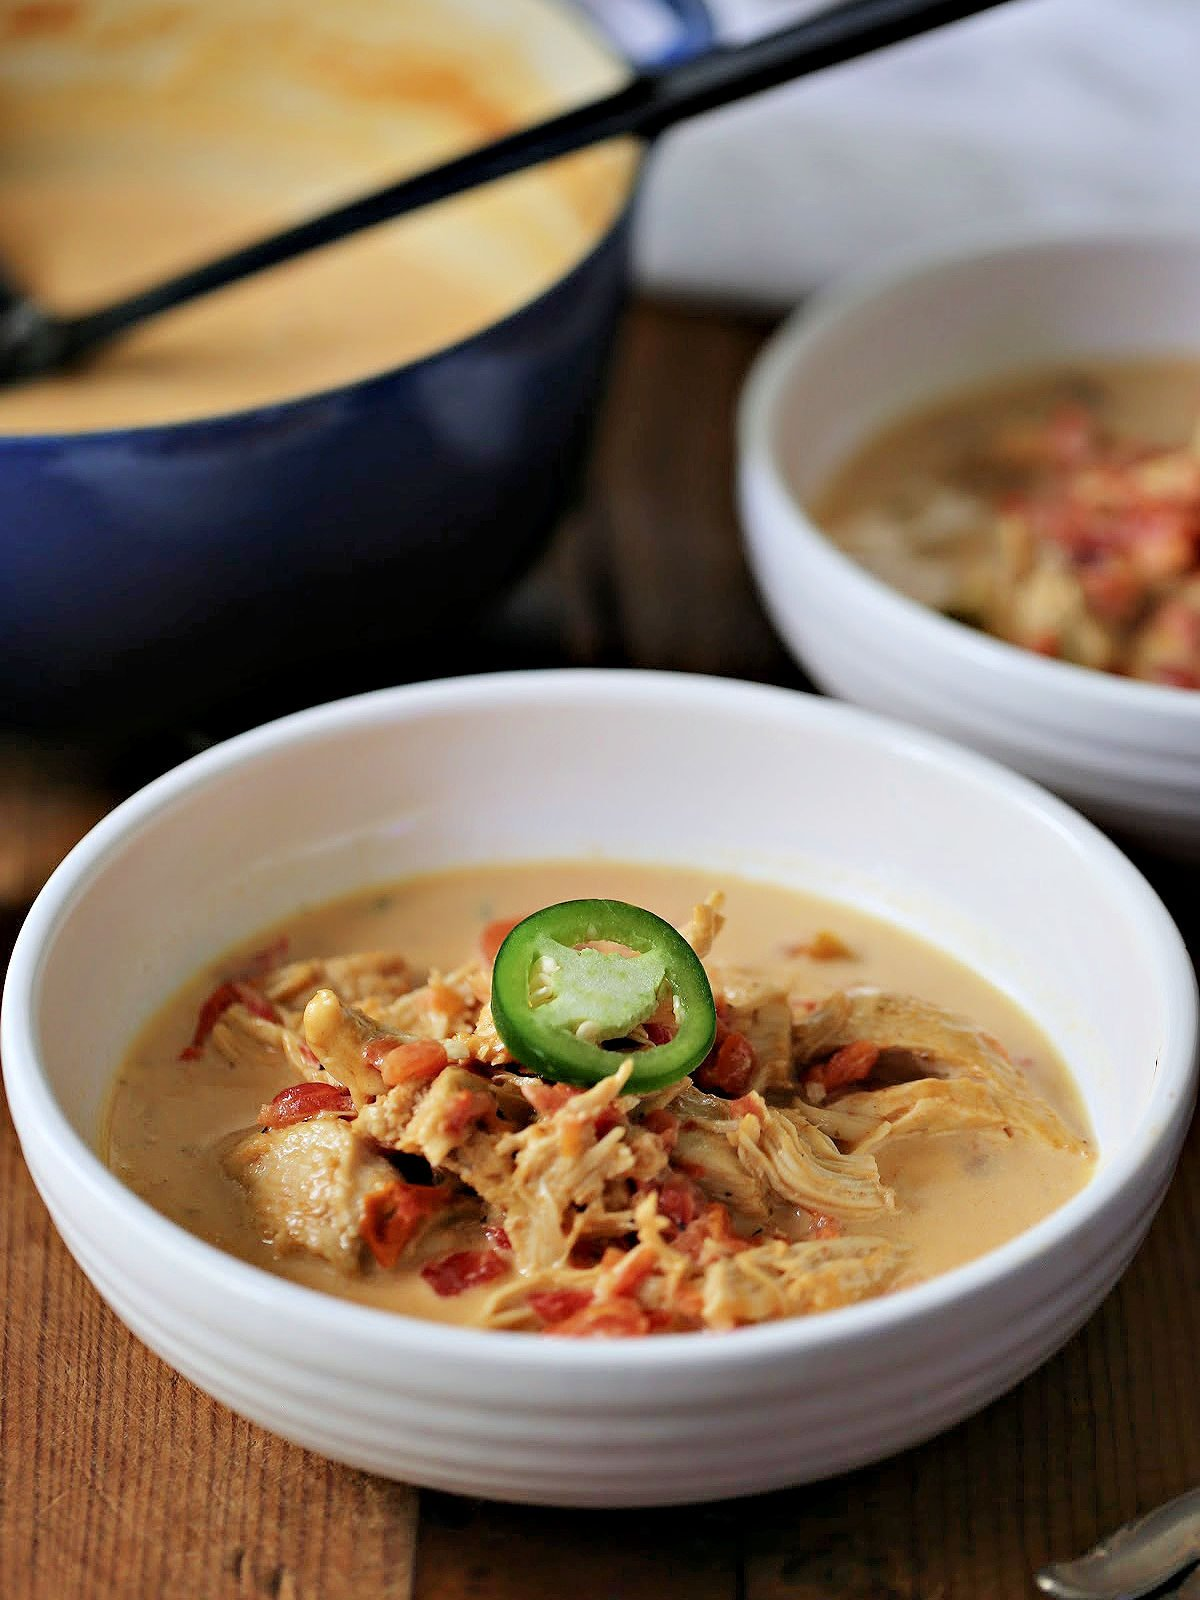 Bowl of low carb chicken soup made with RoTel and heavy cream.